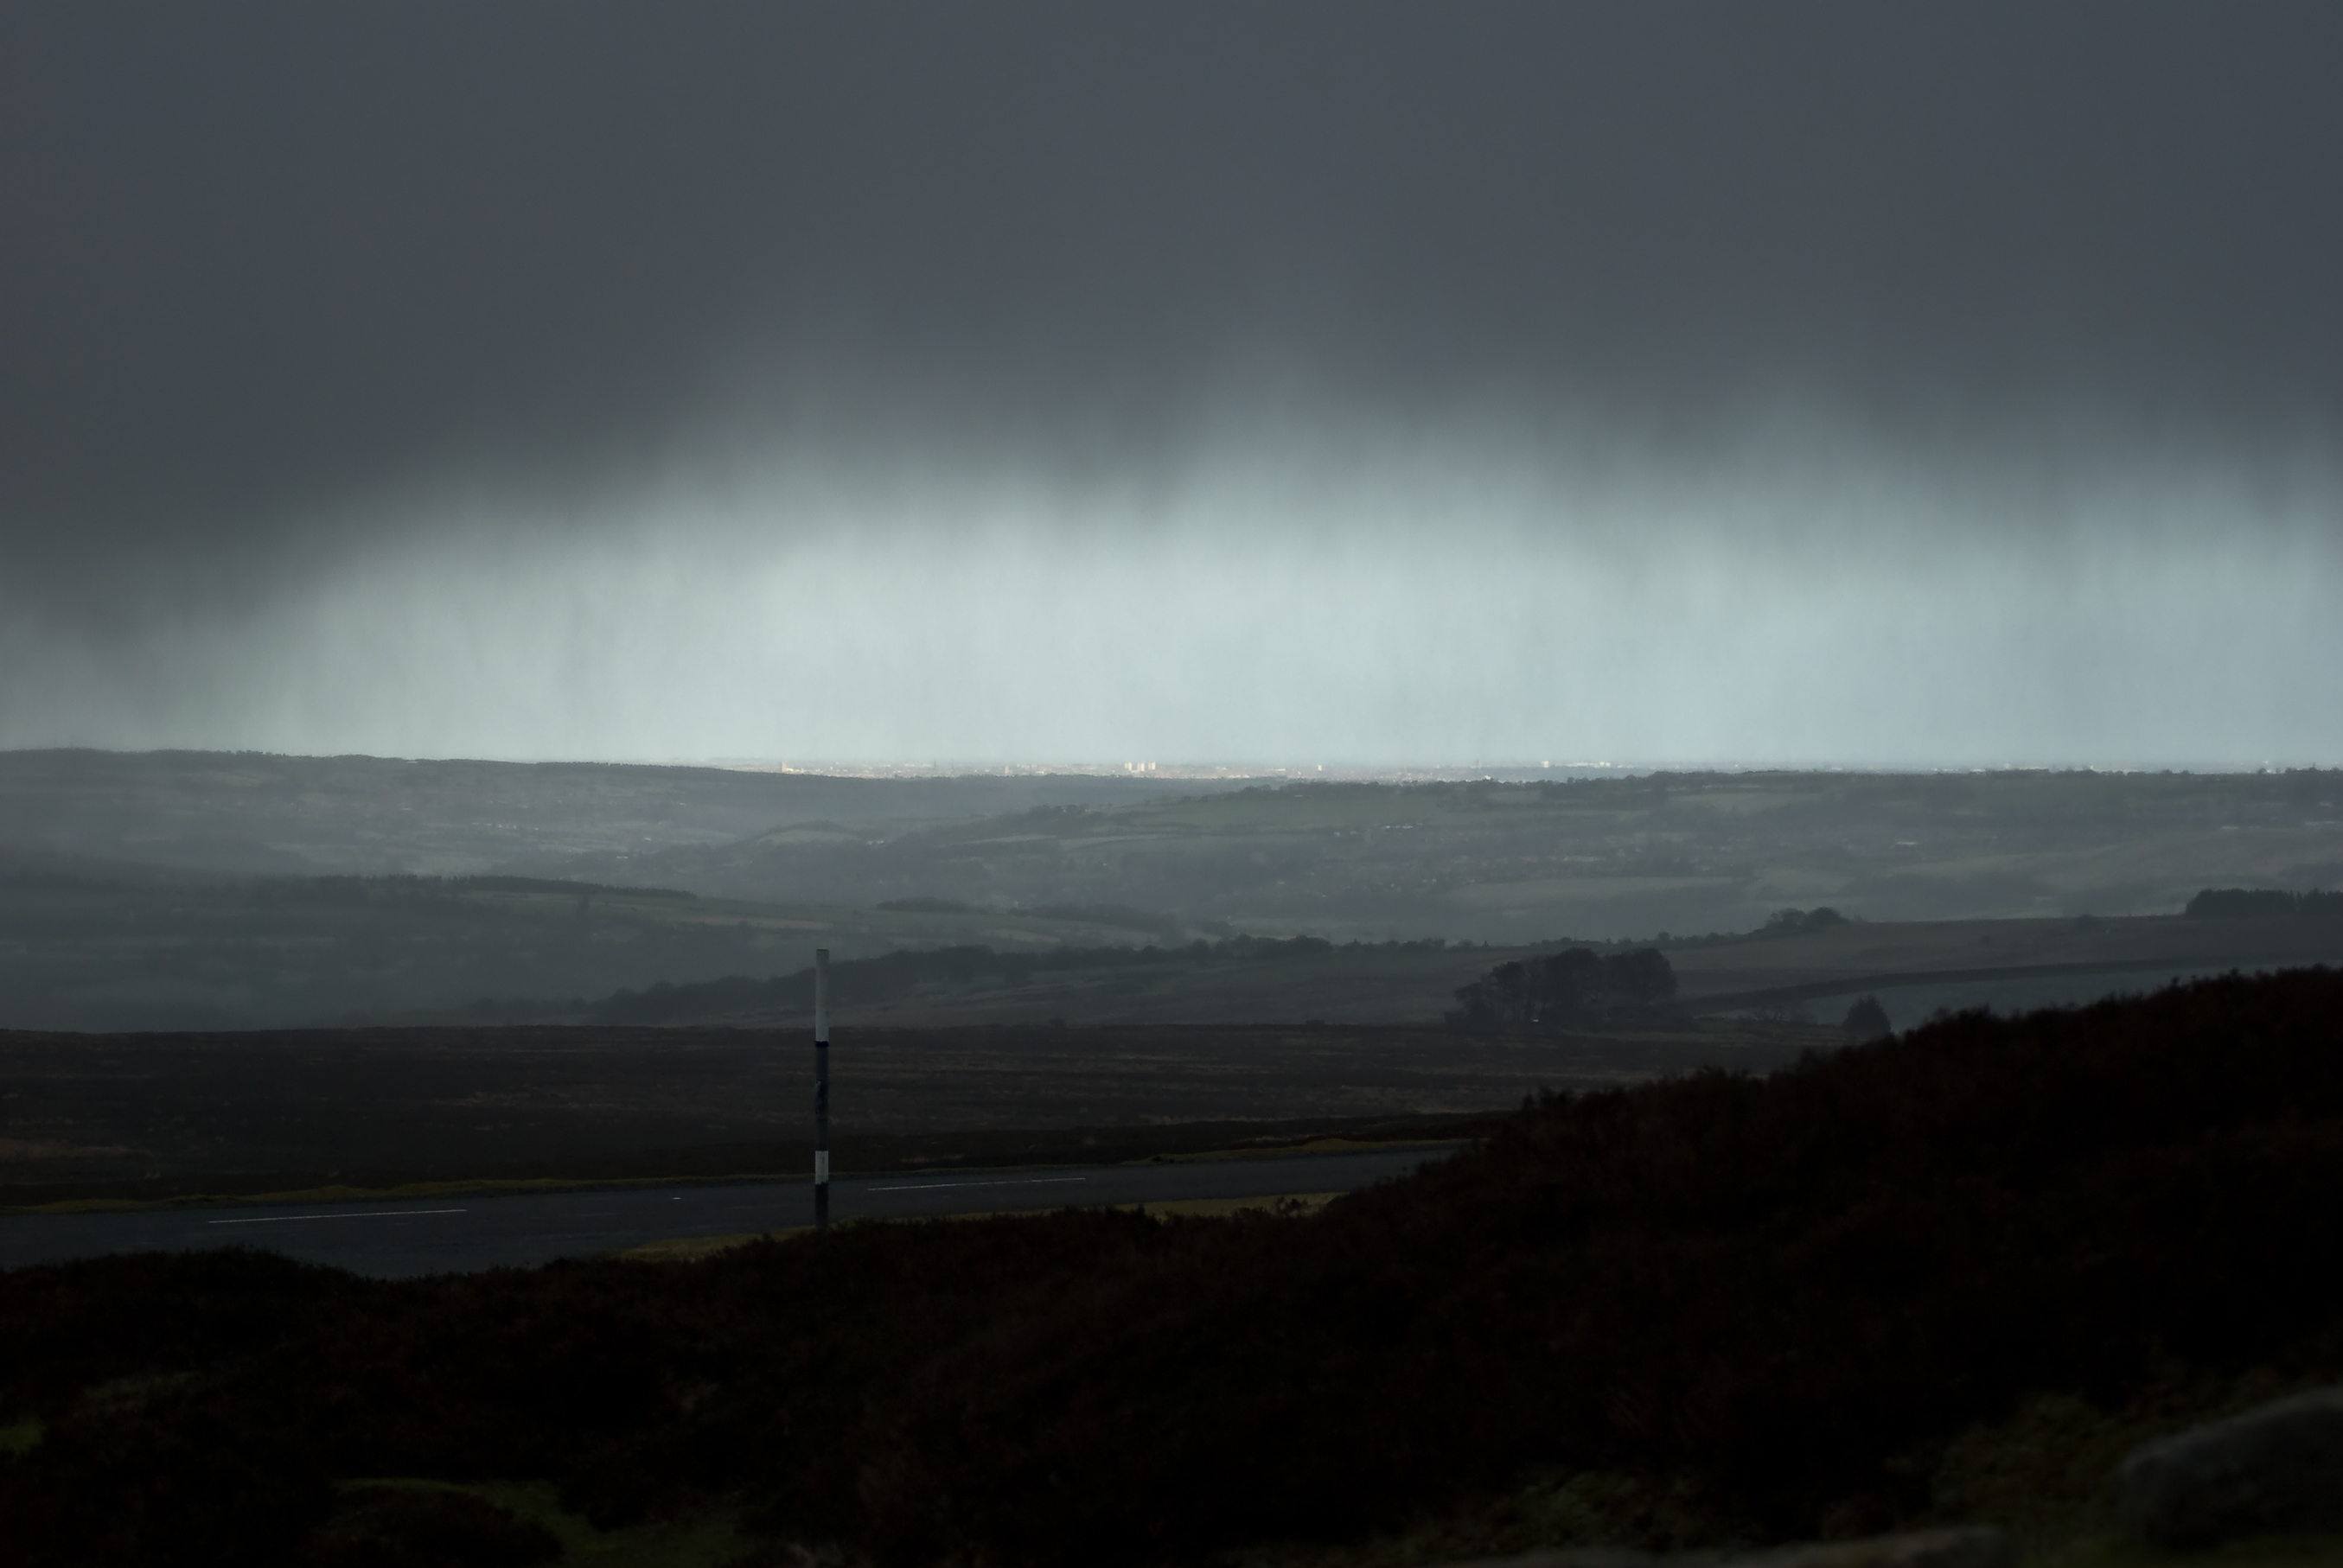 Courtesy of Jonathan Pearson - Rain over the moors, sun over Consett - Creative Commons Flickr